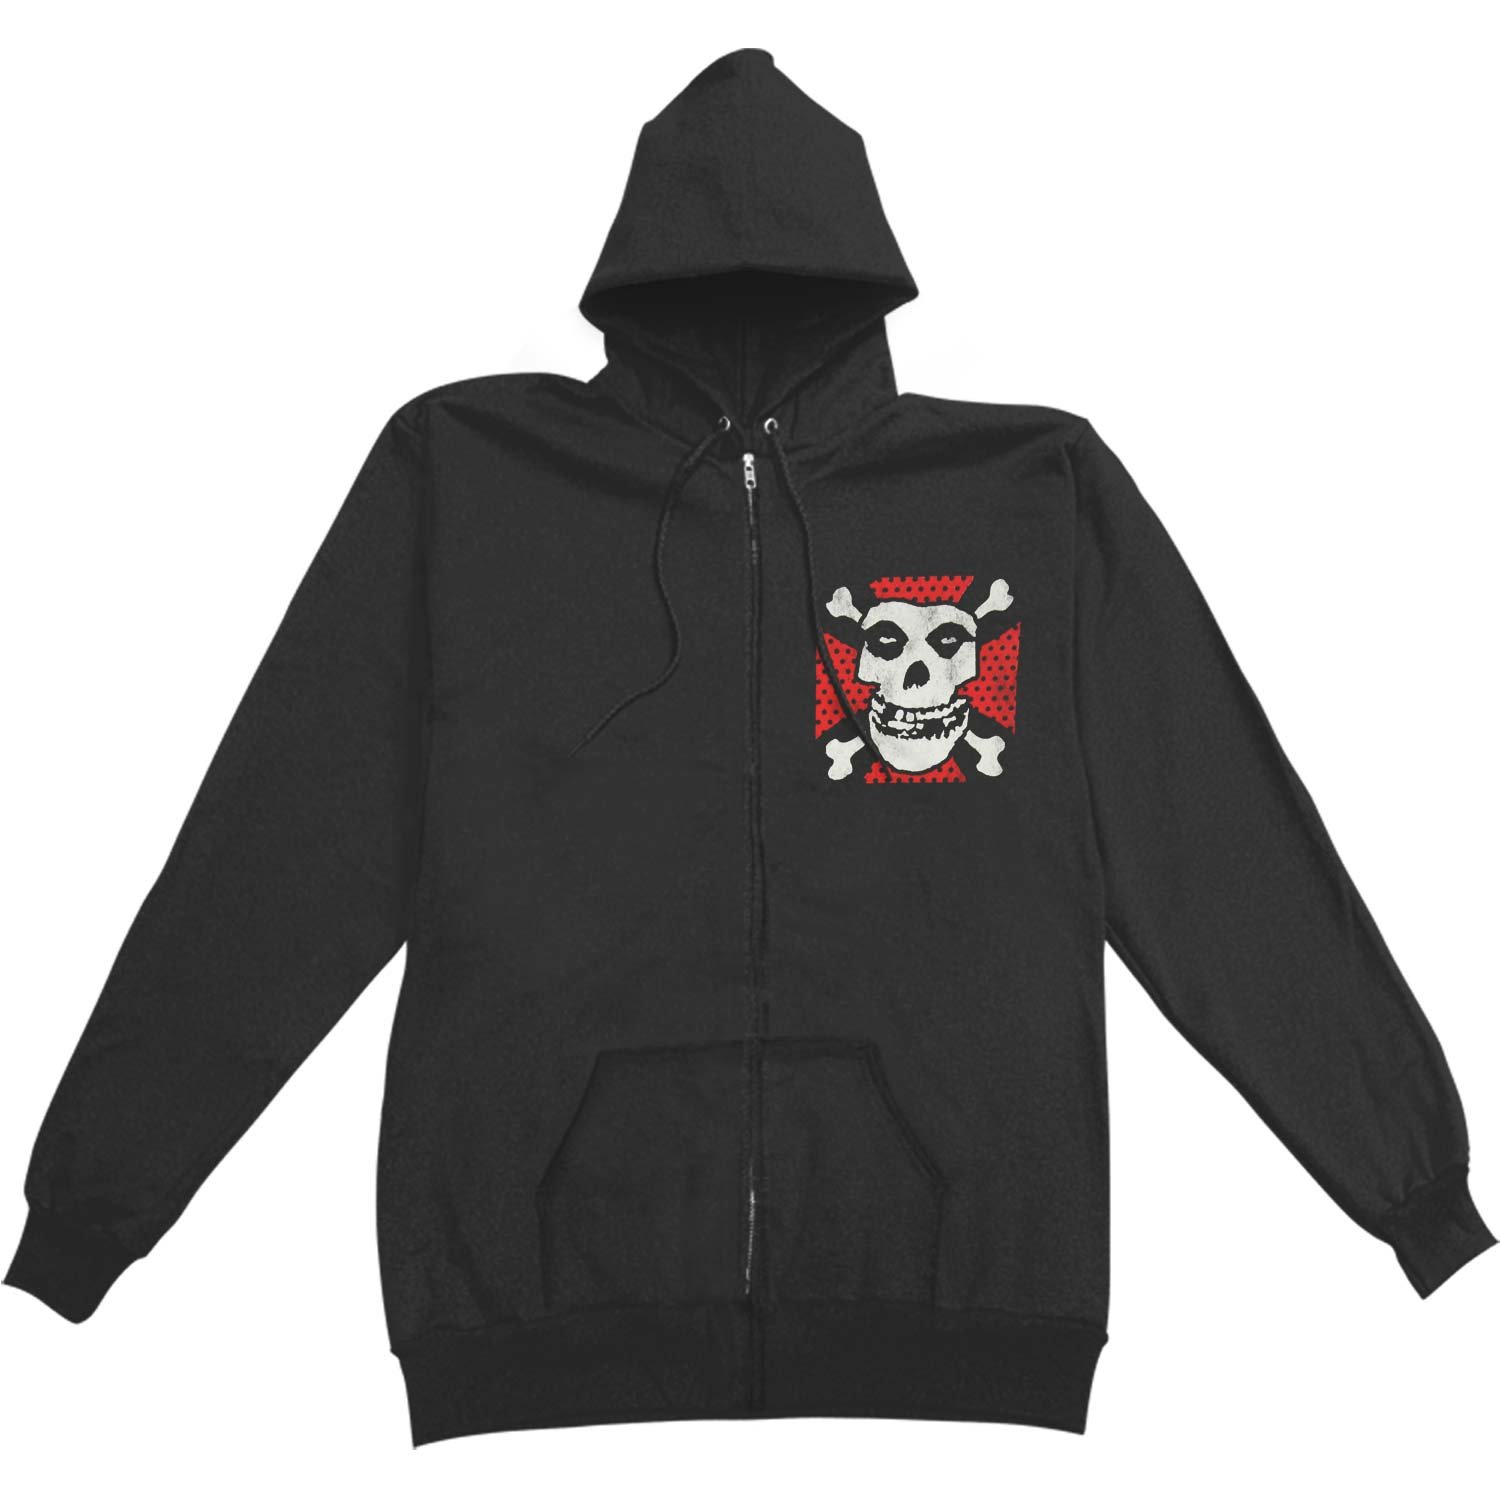 Misfits Men's Mens Hoodie Zippered Hooded Sweatshirt Black BIO DOMES HEADWEAR